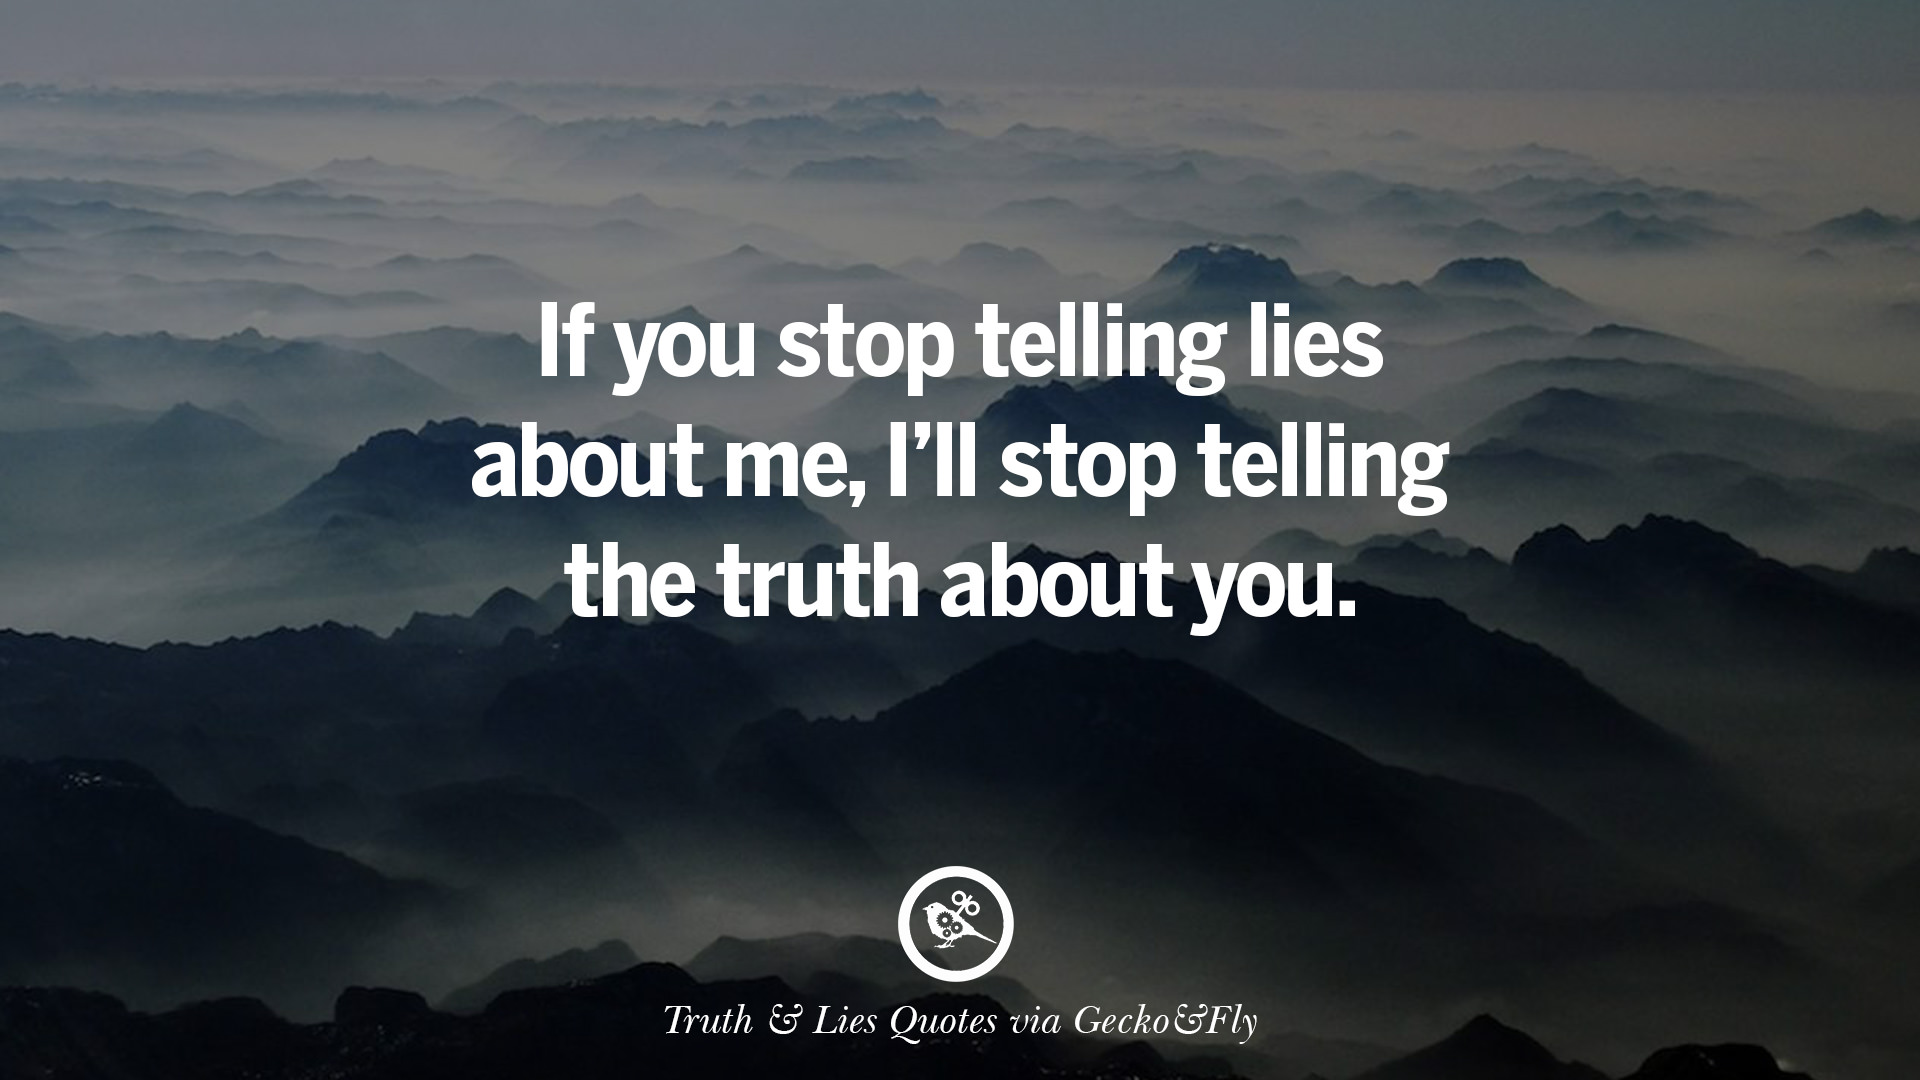 the truth about lies The truth about lying published july 29, 2016 comments  karlee bauer february 27, 2017 im interested in using this as an external source for an essay is there .